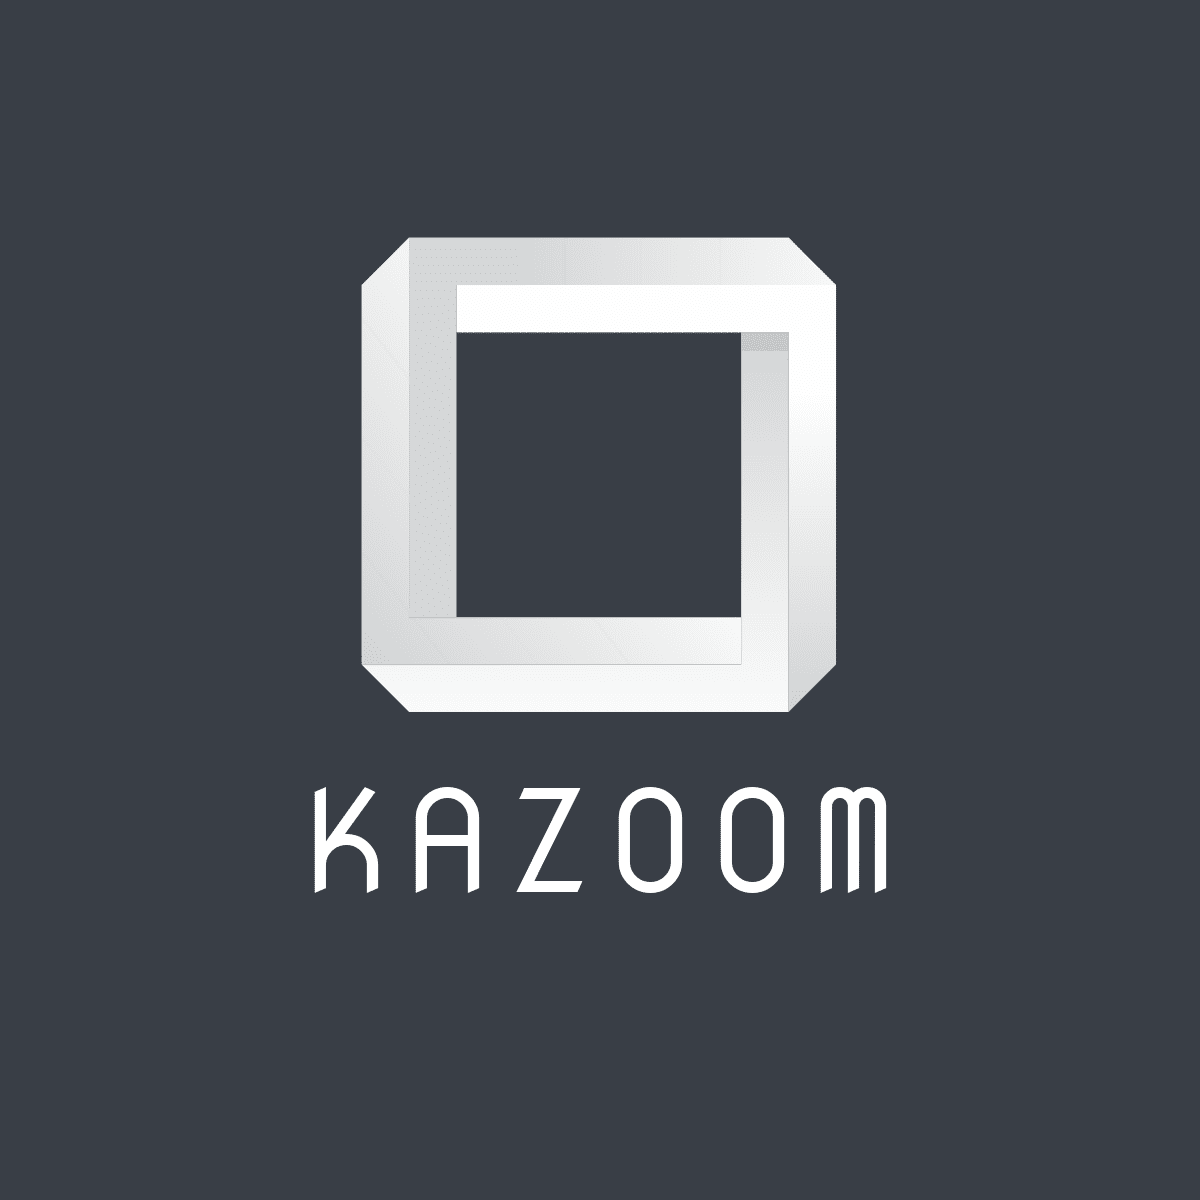 Professional Logo Creation for Business